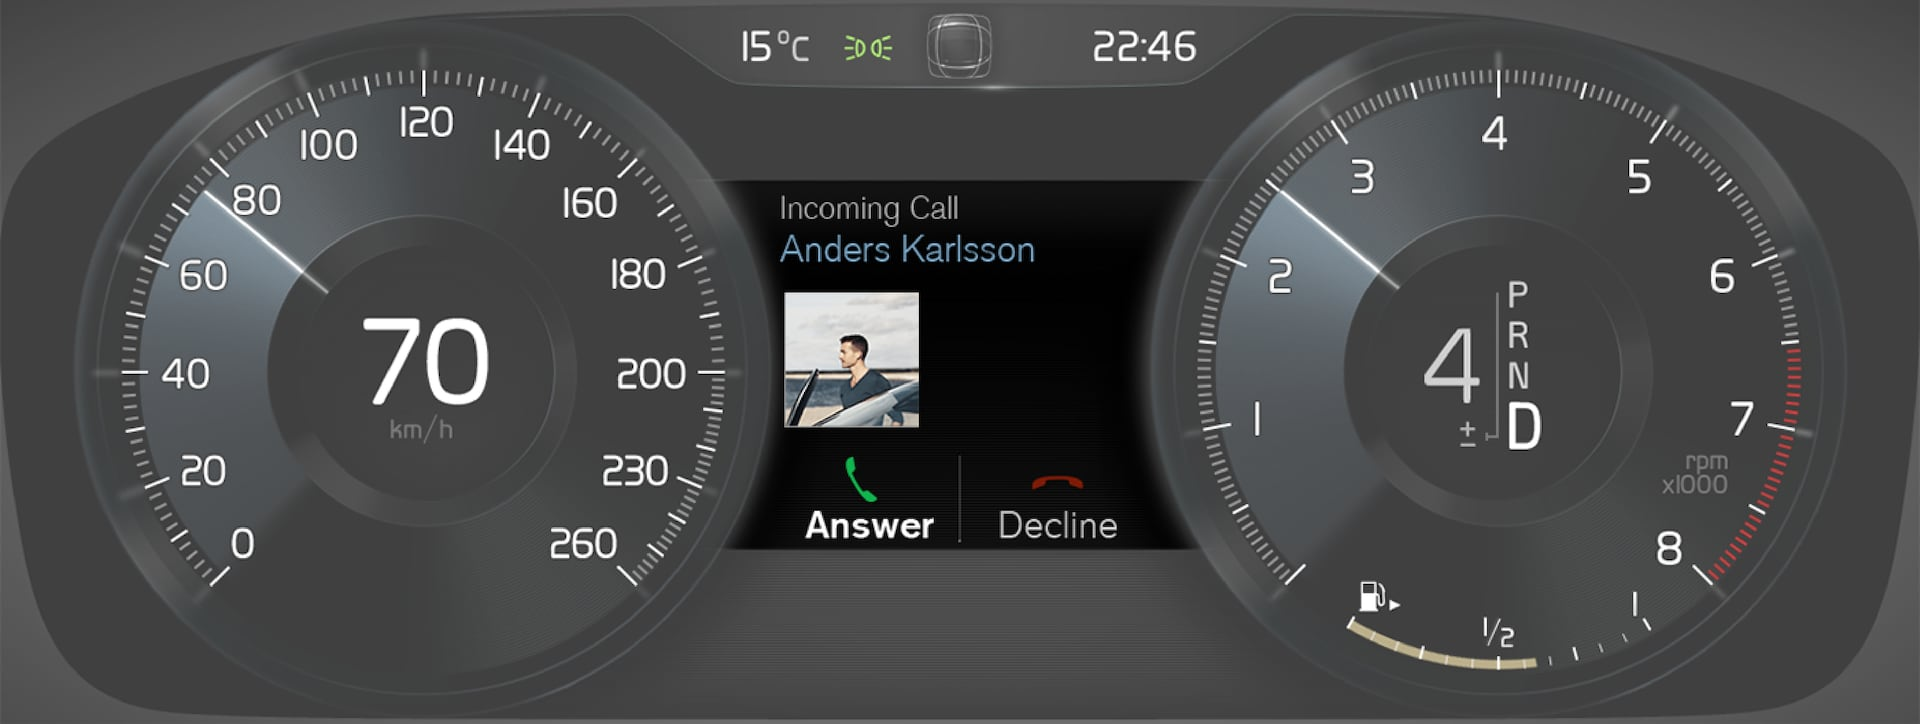 P5-1507-Incoming Call, message in driver display